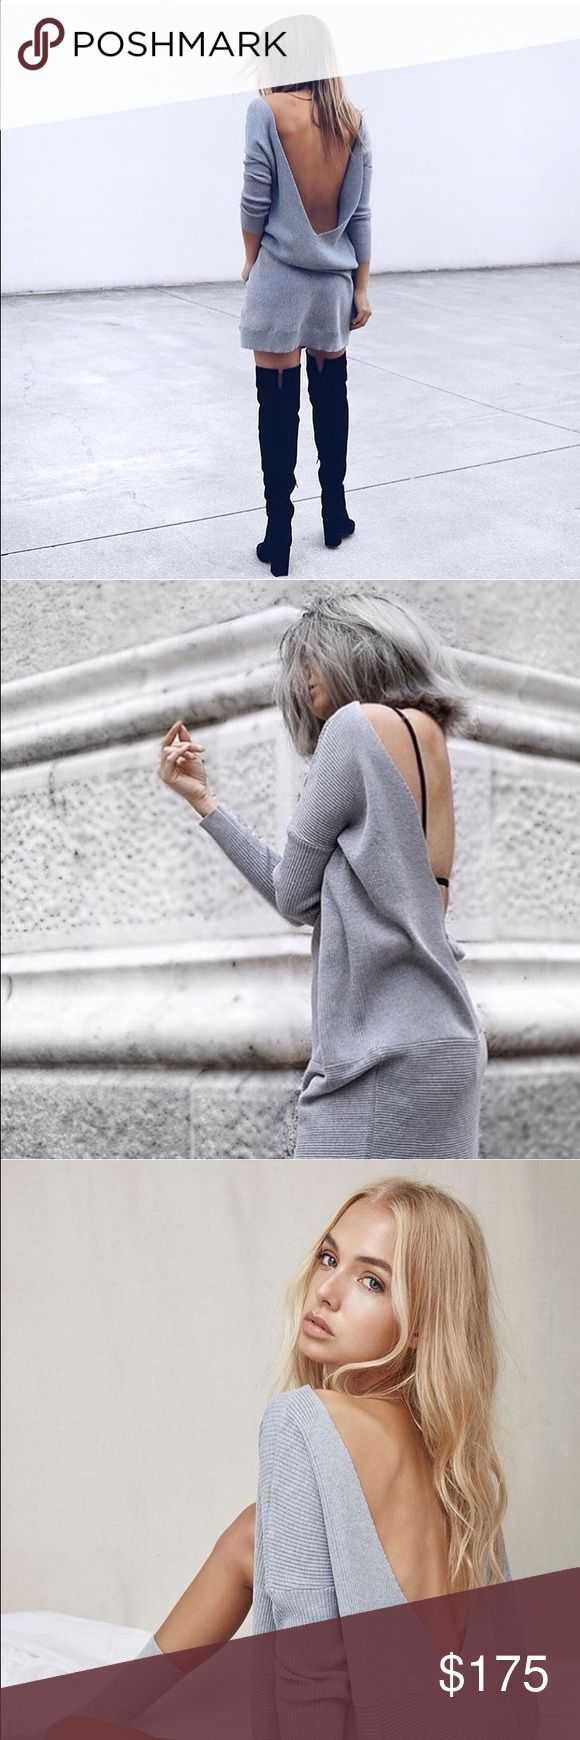 🆕 Oversized Backless Sweater Knit Dress Finders Keepers the label oversized grey Knit sweater dress. Australian label not to be confused with Finders Keepers. Sold out online! Finders Keepers Dresses Backless